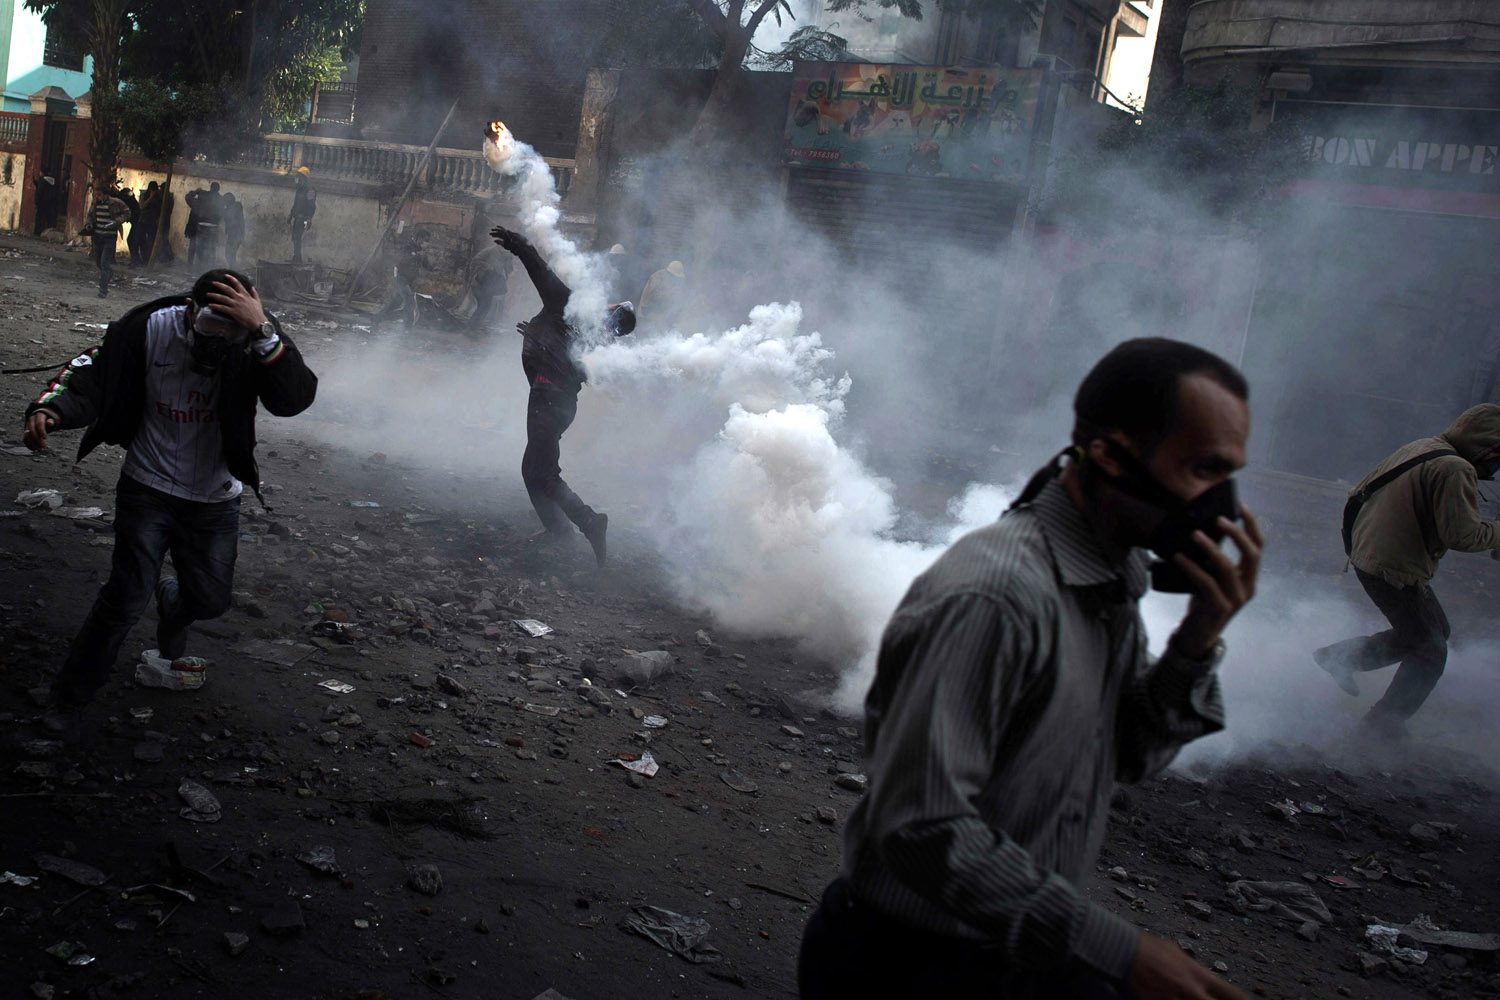 Nov. 22, 2011. Egyptians frustrated by army rule battle police in Cairo.